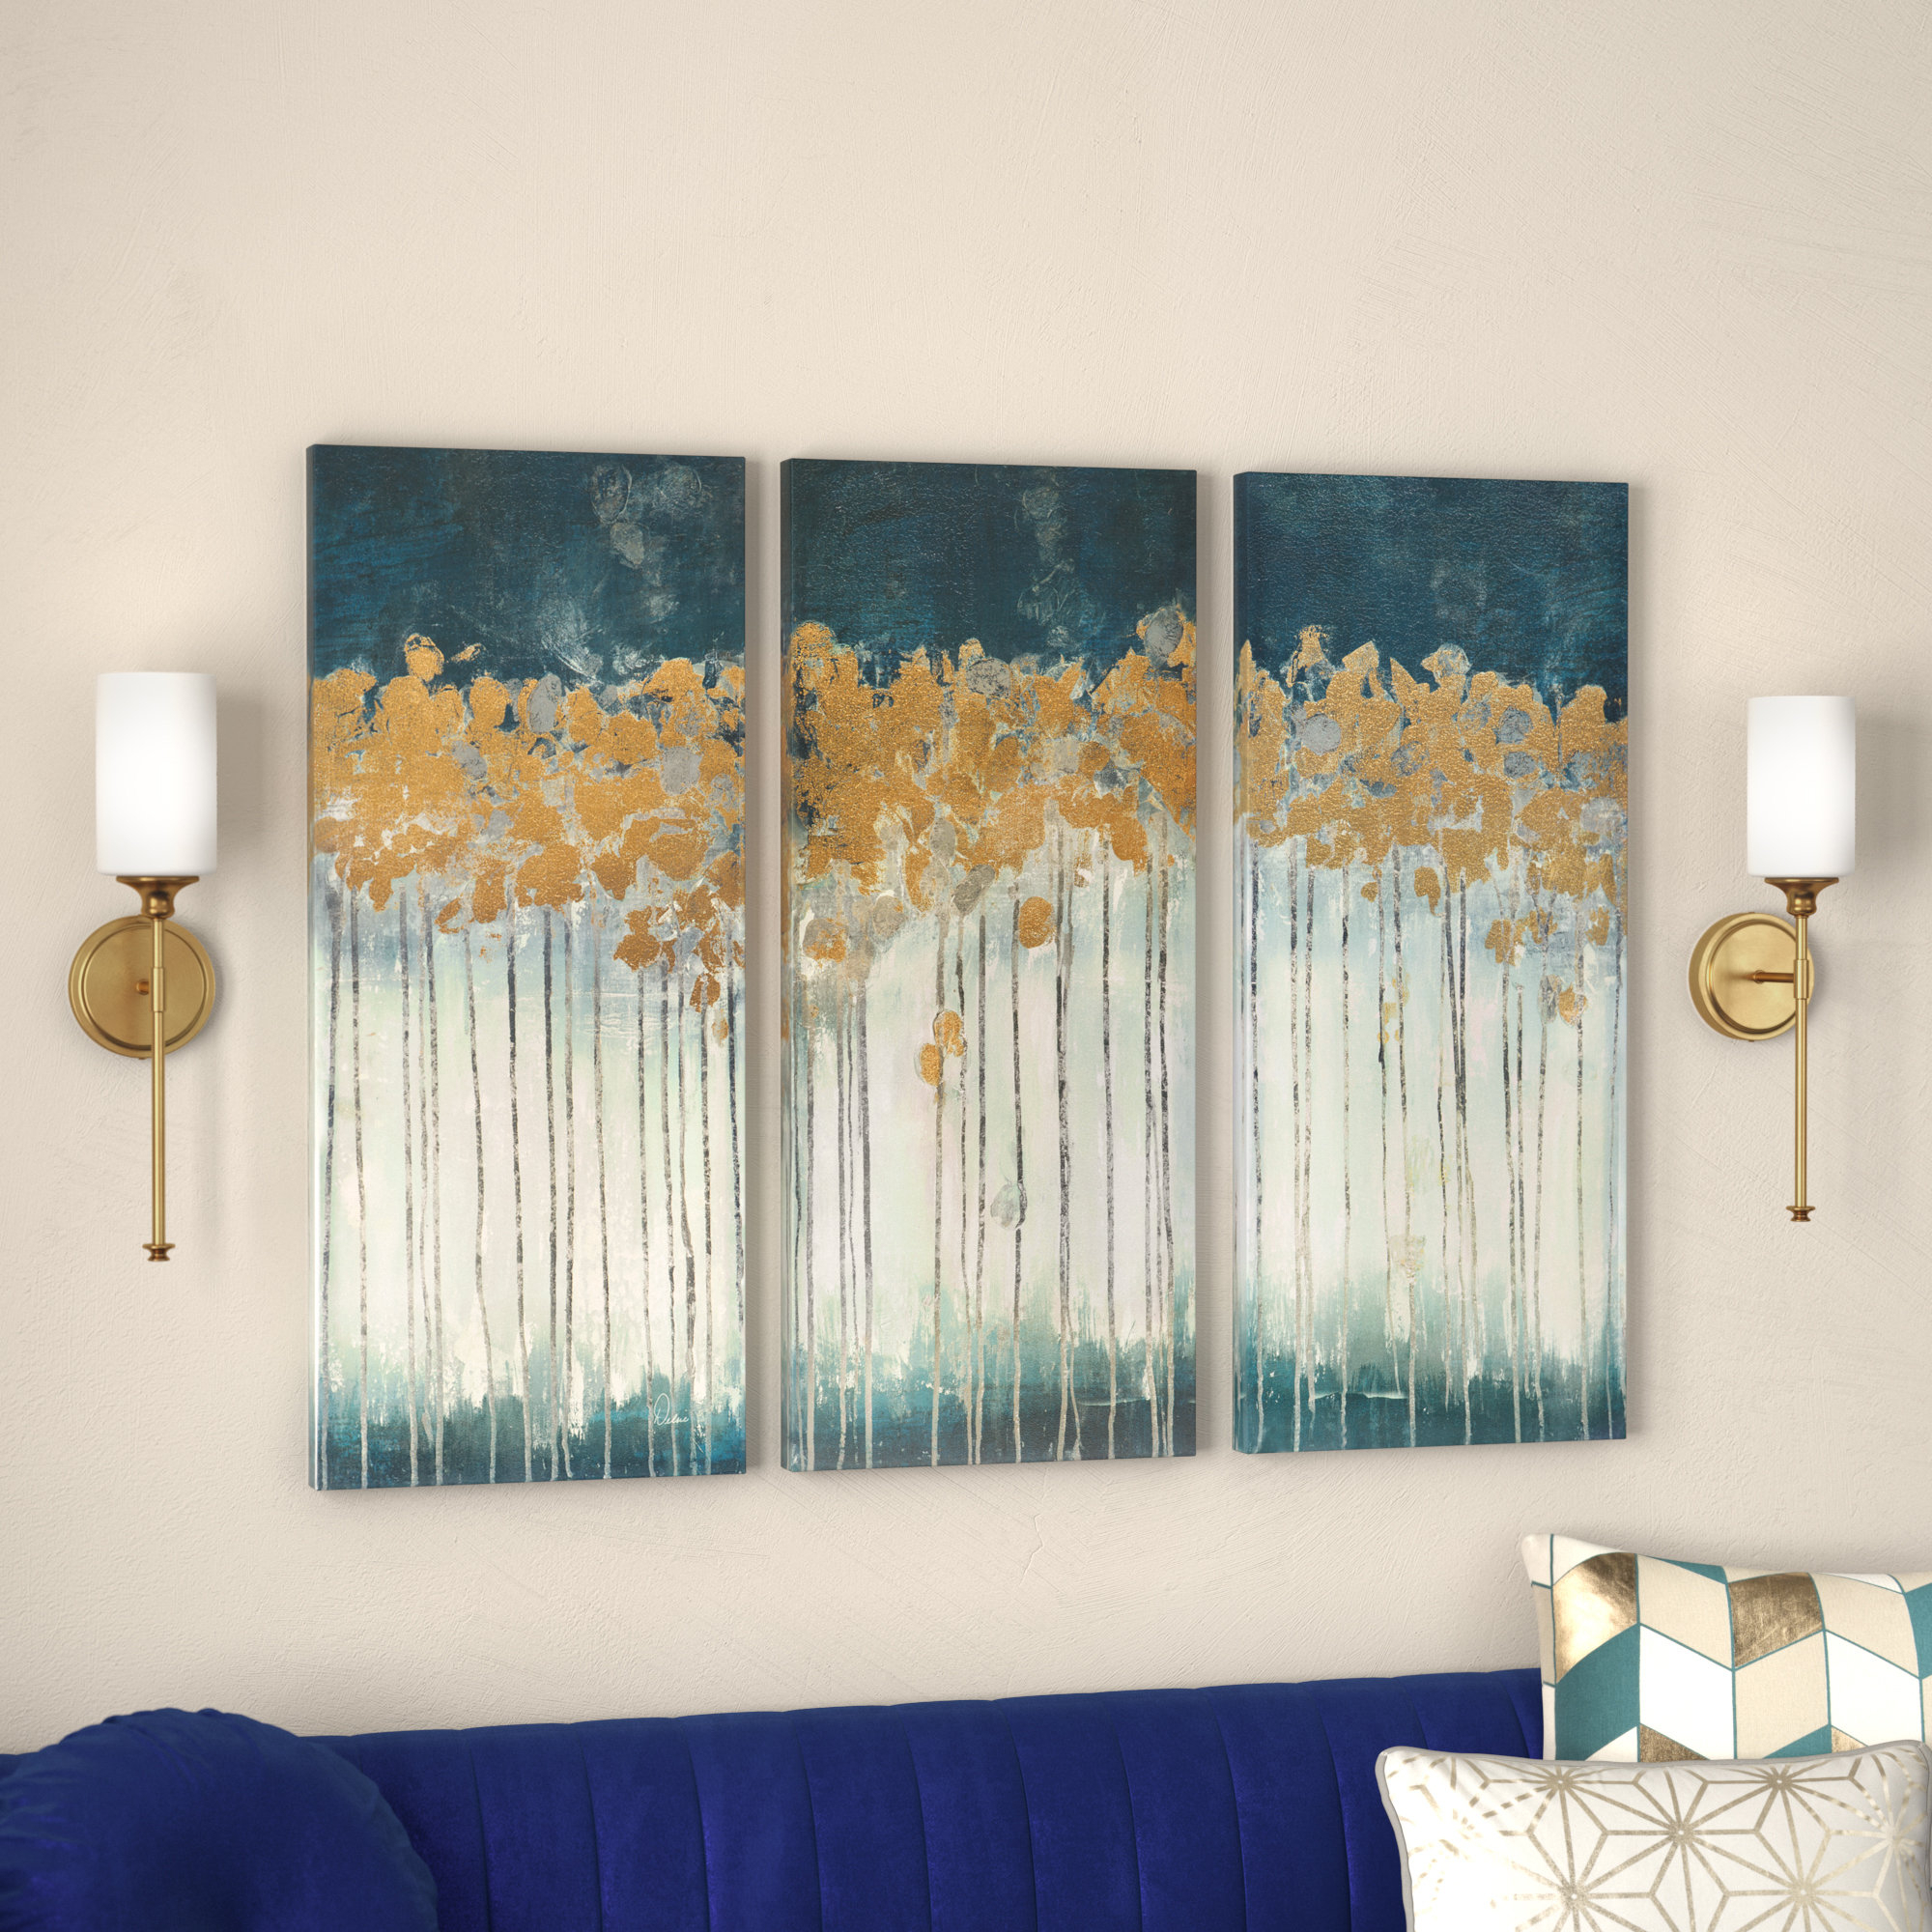 3 Piece Wall Art You'll Love In 2019 | Wayfair with regard to 3 Piece Wall Decor Sets by Wrought Studio (Image 16 of 30)